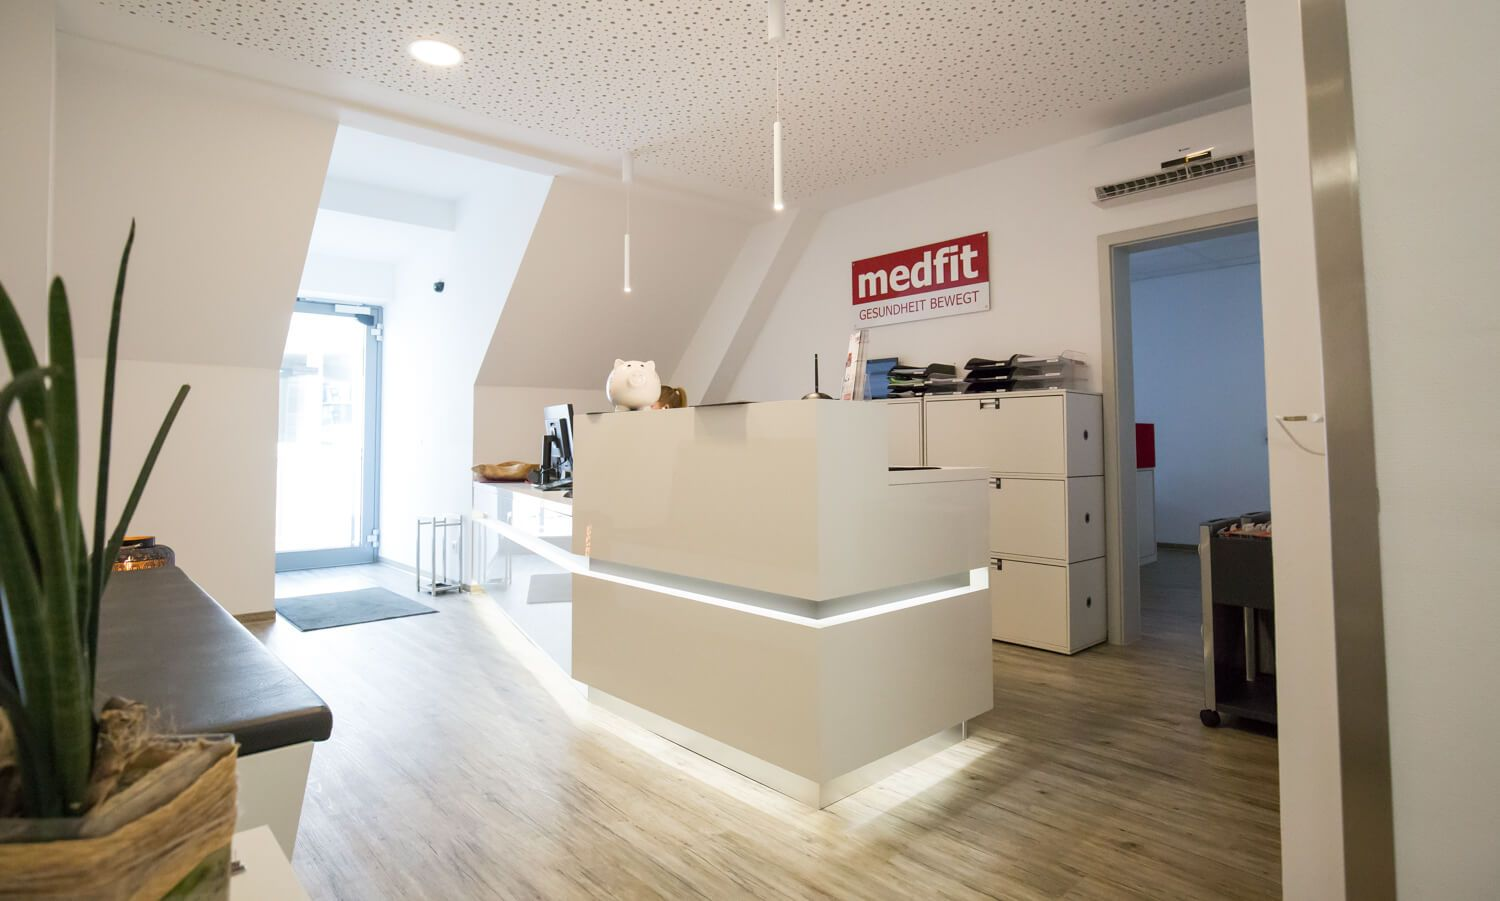 medfit Physiotherapie Bruchsal Empfgang